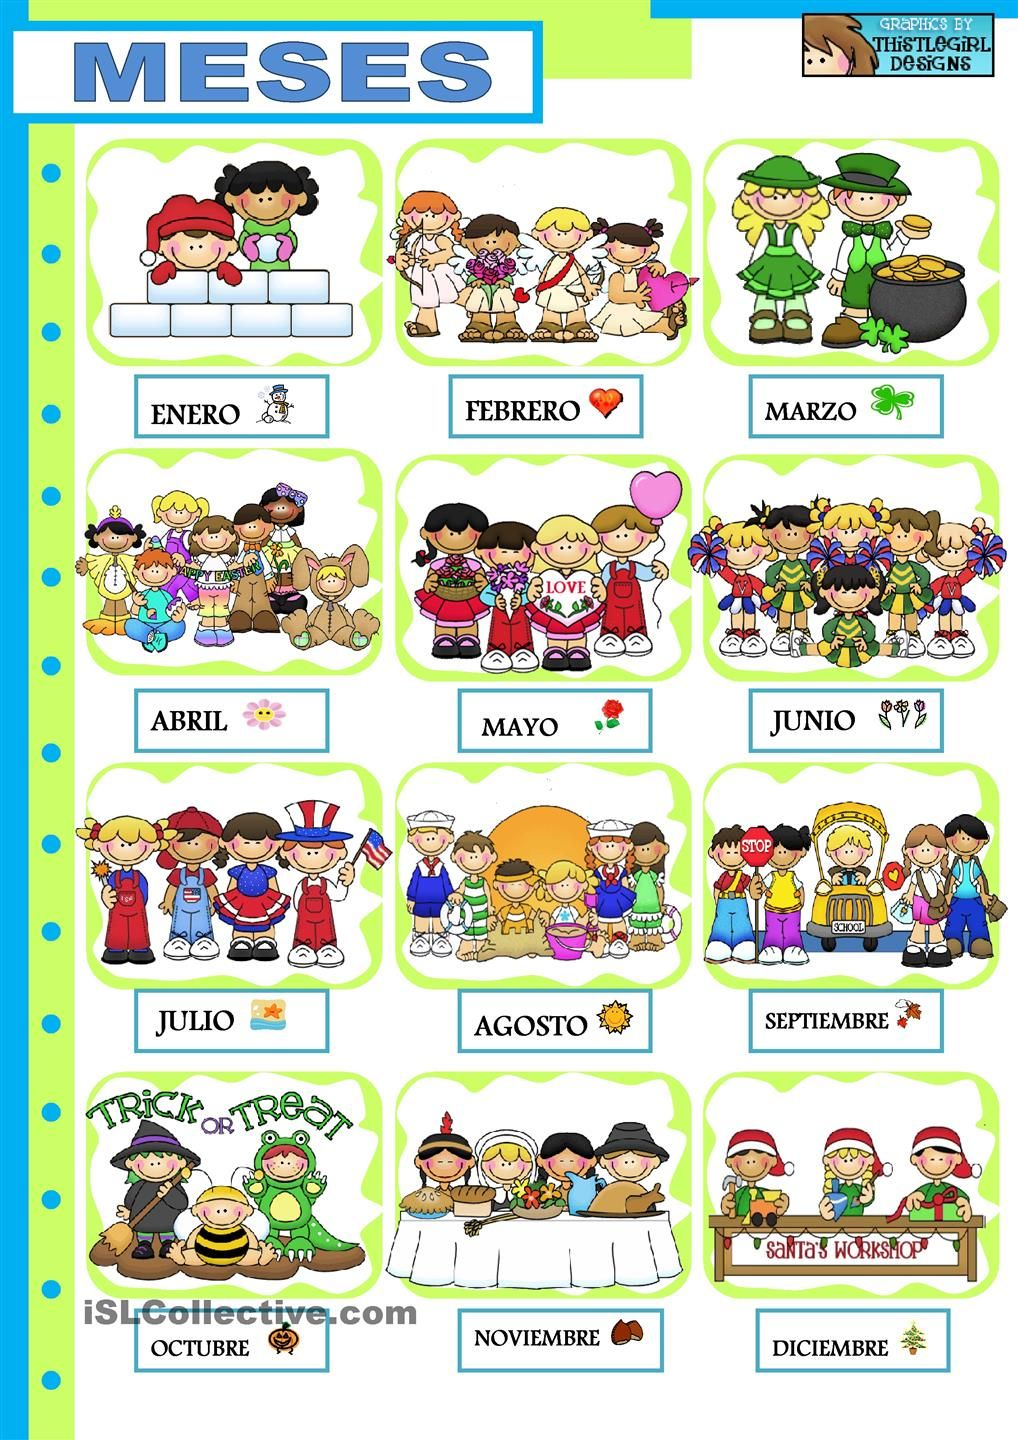 Los Mese Del Año En Ingles Meses Del Año Spanish Learning Teaching French Months In